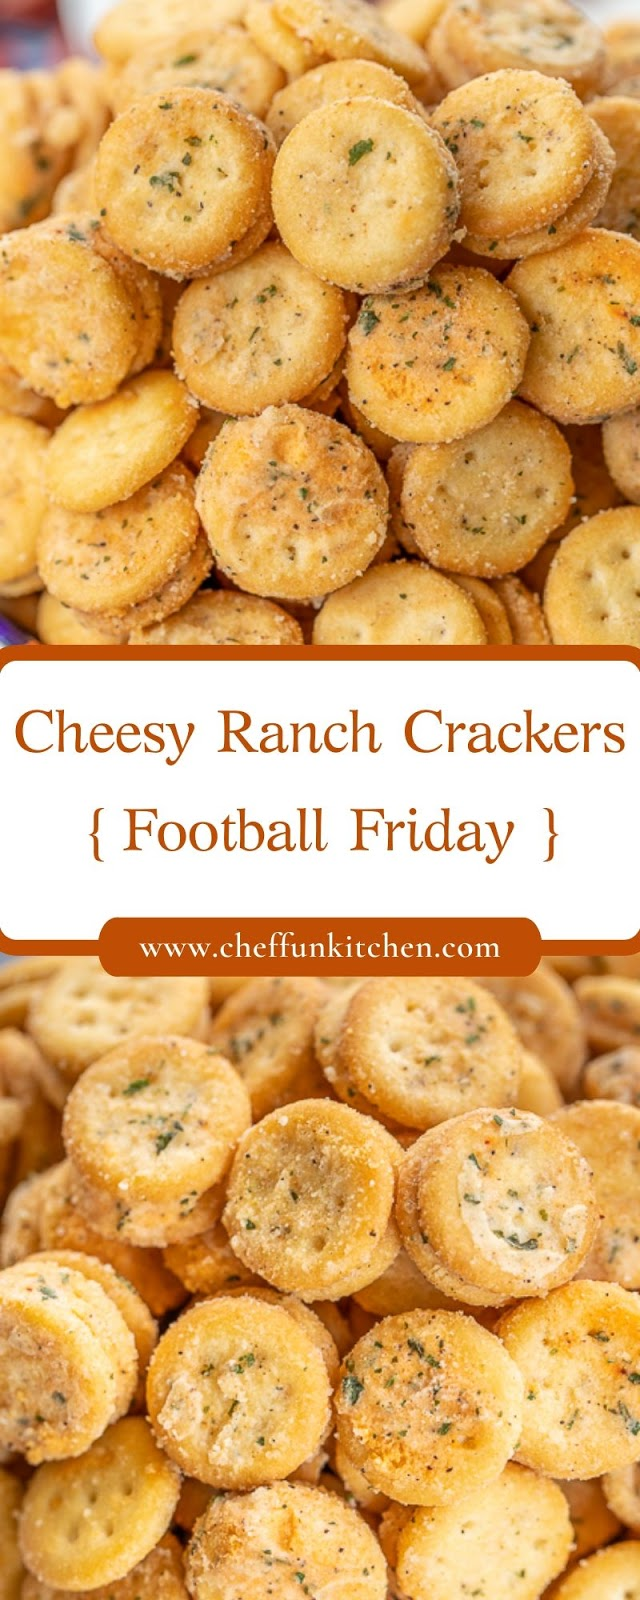 Cheesy Ranch Crackers - Football Friday